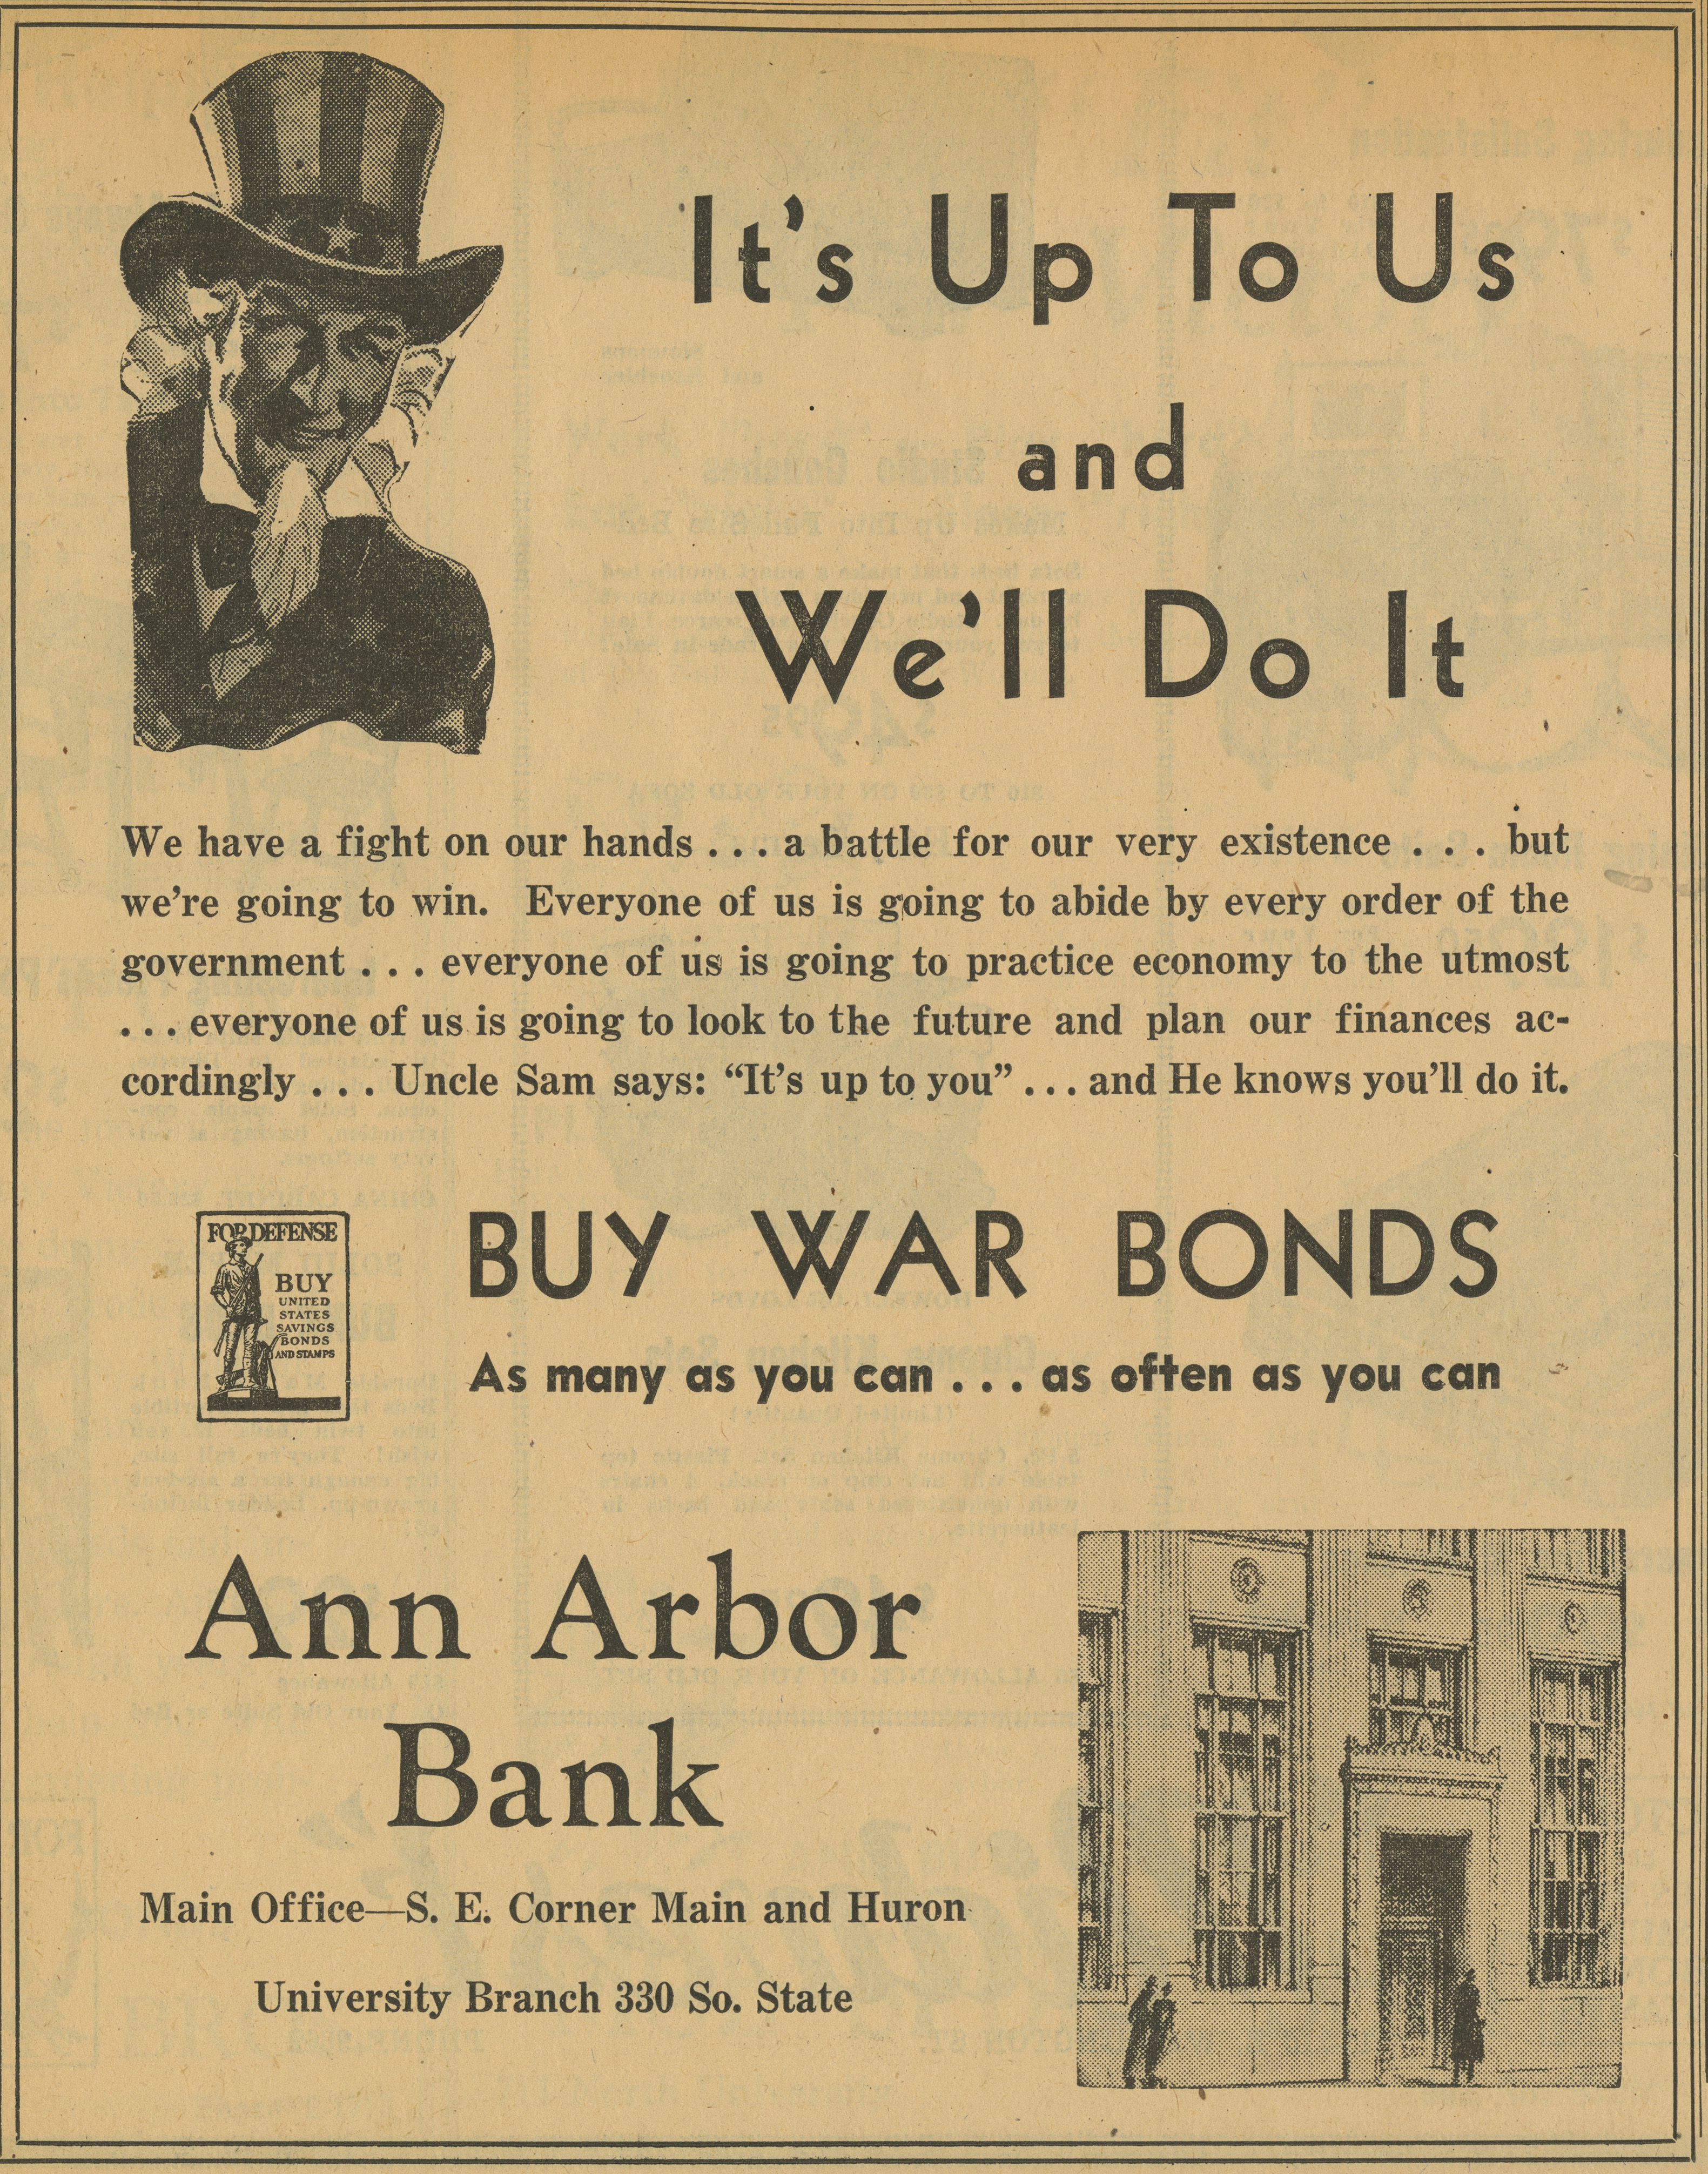 Ann Arbor Bank [advertisement] image